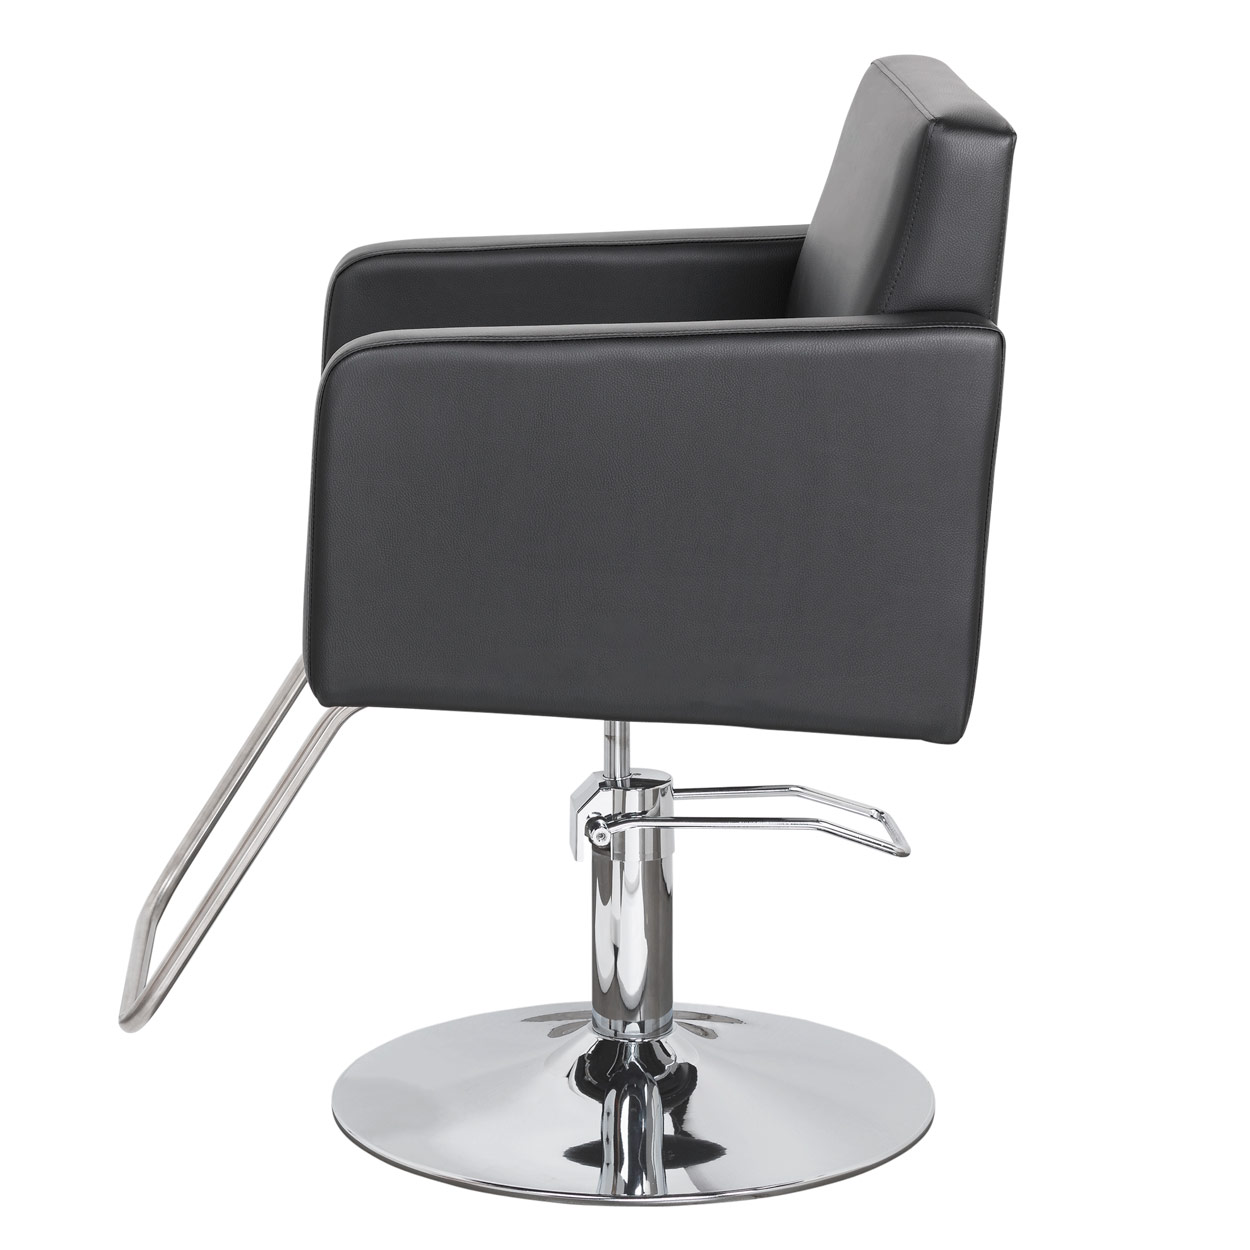 Modin Hair Salon Styling Chair alternative product image 2